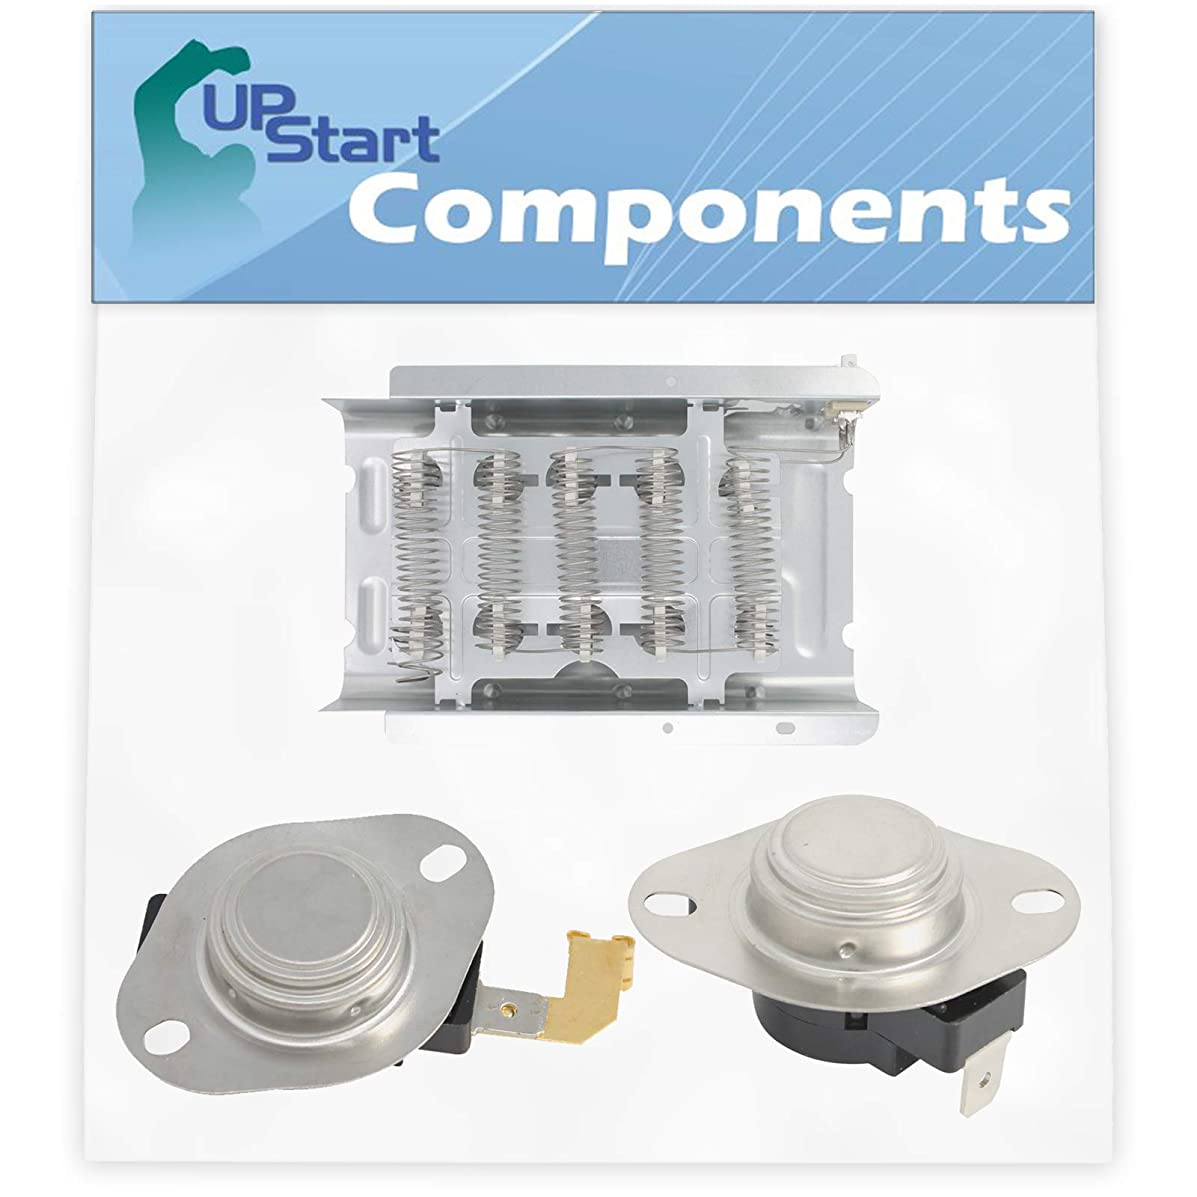 279838, 3977767 & 3392519 Dryer Heating Element & Thermostat Combo Pack Replacement for Whirlpool LER5620KQ0 Dryer - Compatible with 279838, 3977767 & 3392519 Heater Element and Thermostat Combo Pack